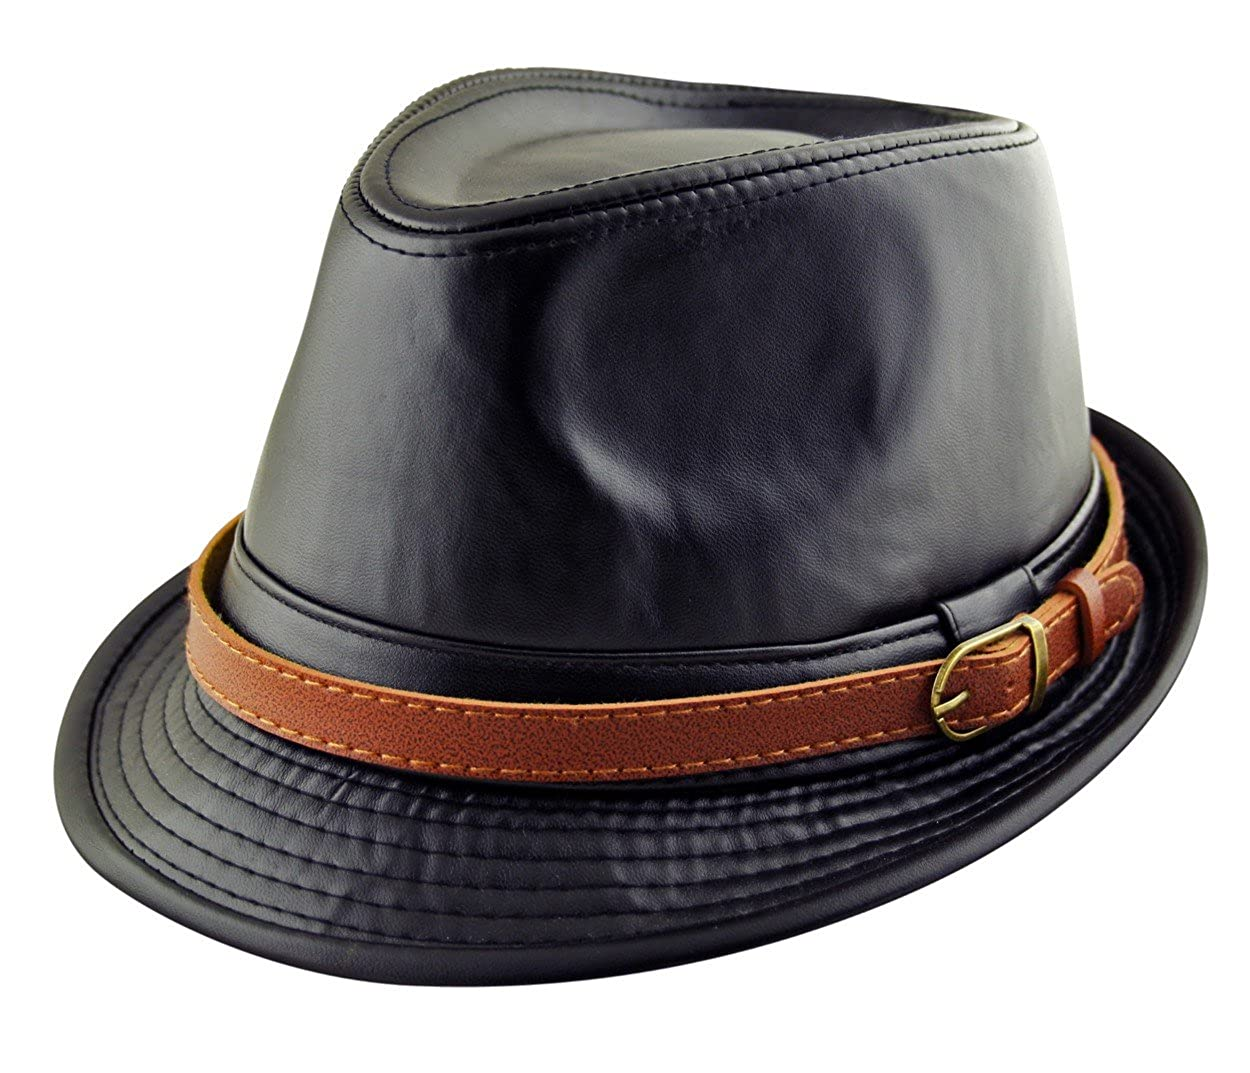 Mens Adult Trilby Fedora Hat & Band Faux Leather in Black or Brown (56, 57, 58, 59, 60 cm)